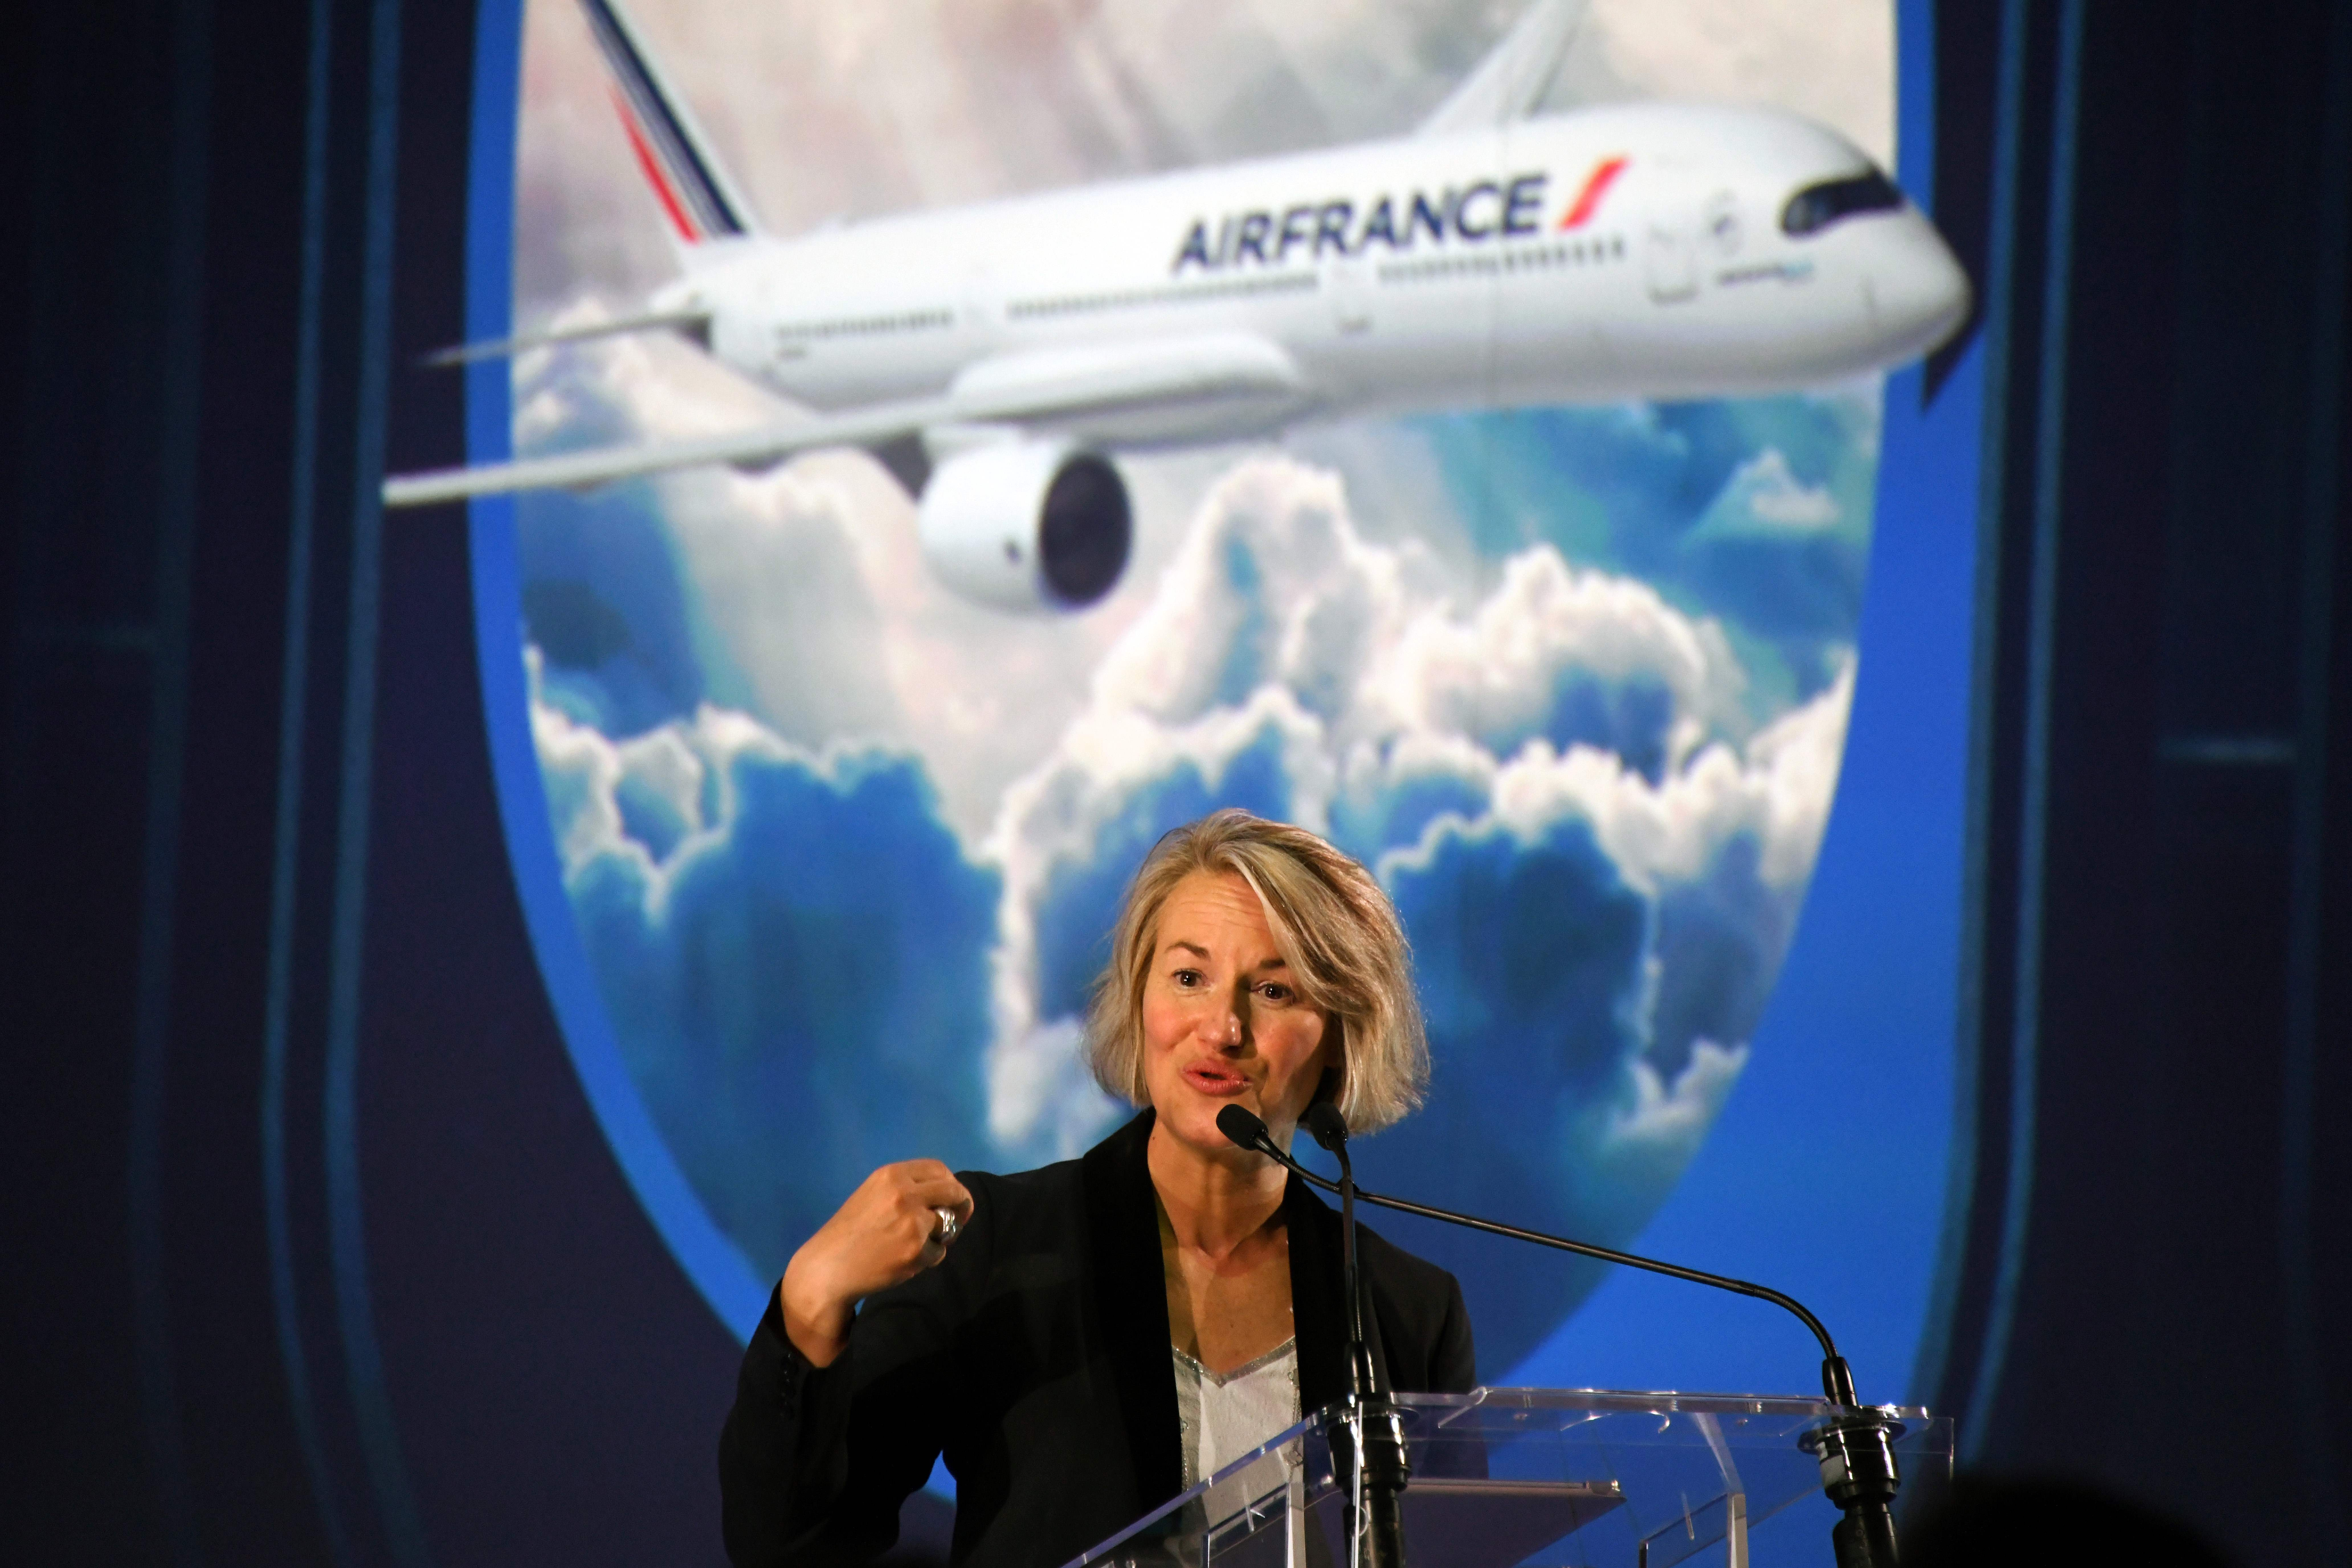 Airline CEOs to climate activists: you're right, our industry is a big problem